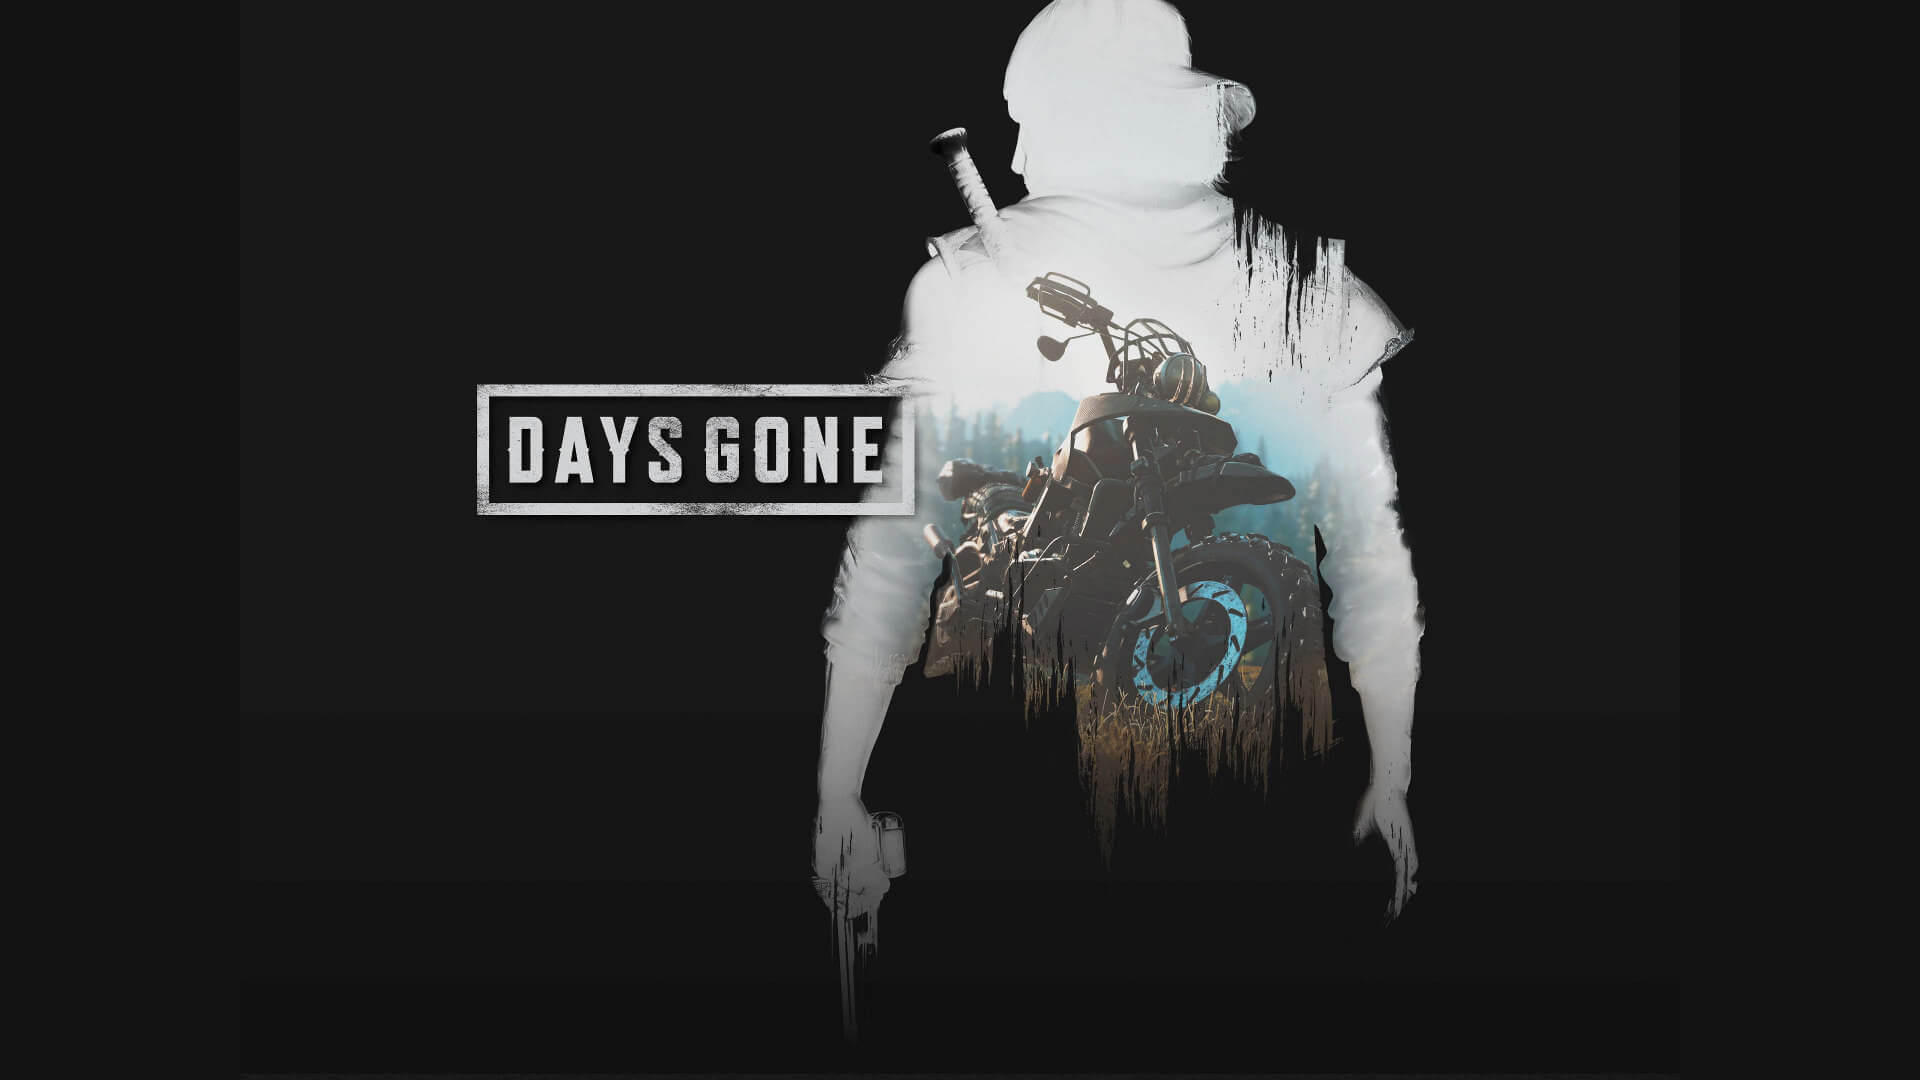 Days Gone Logo 1920x1080